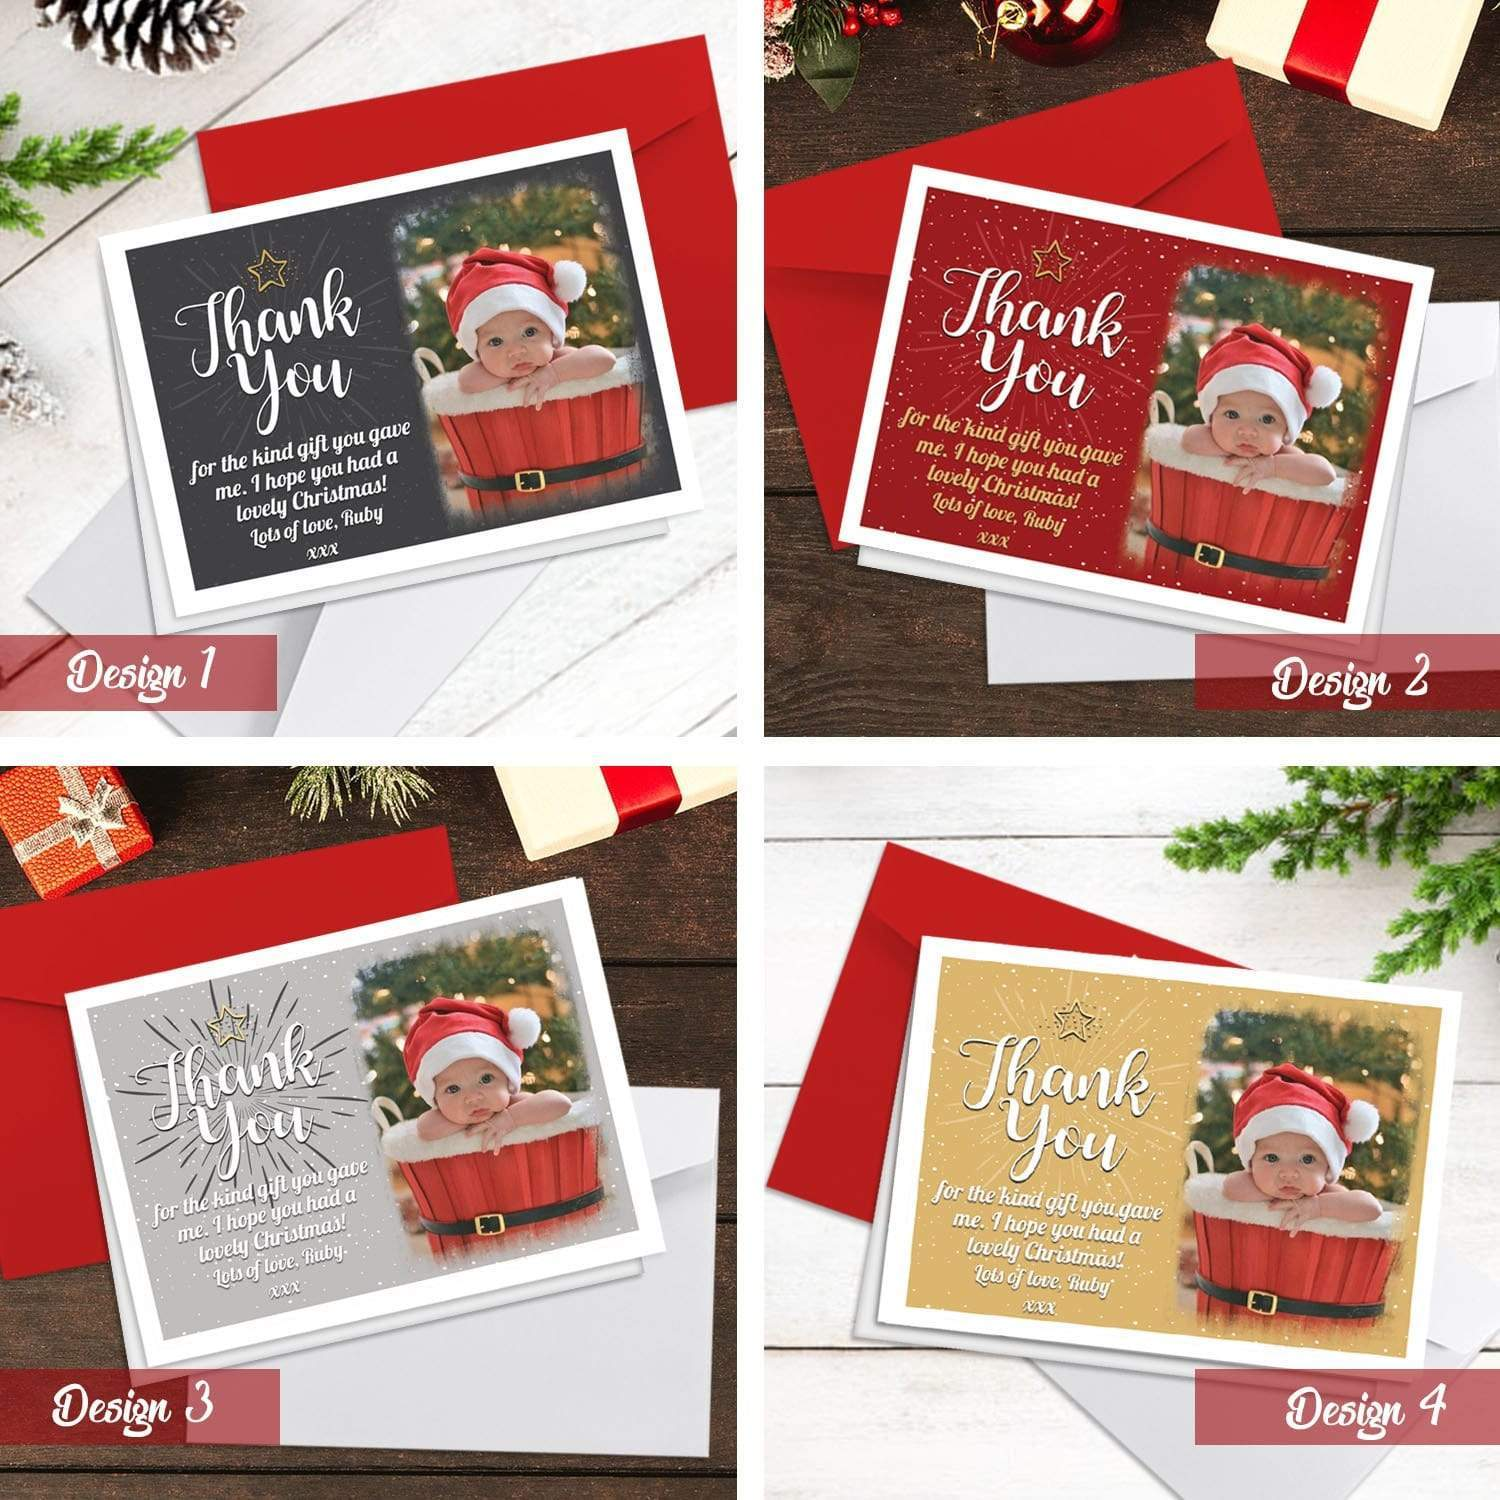 Christmas Thank You Cards.Personalised Christmas Thank You Cards With Photo Folded A5 Cards